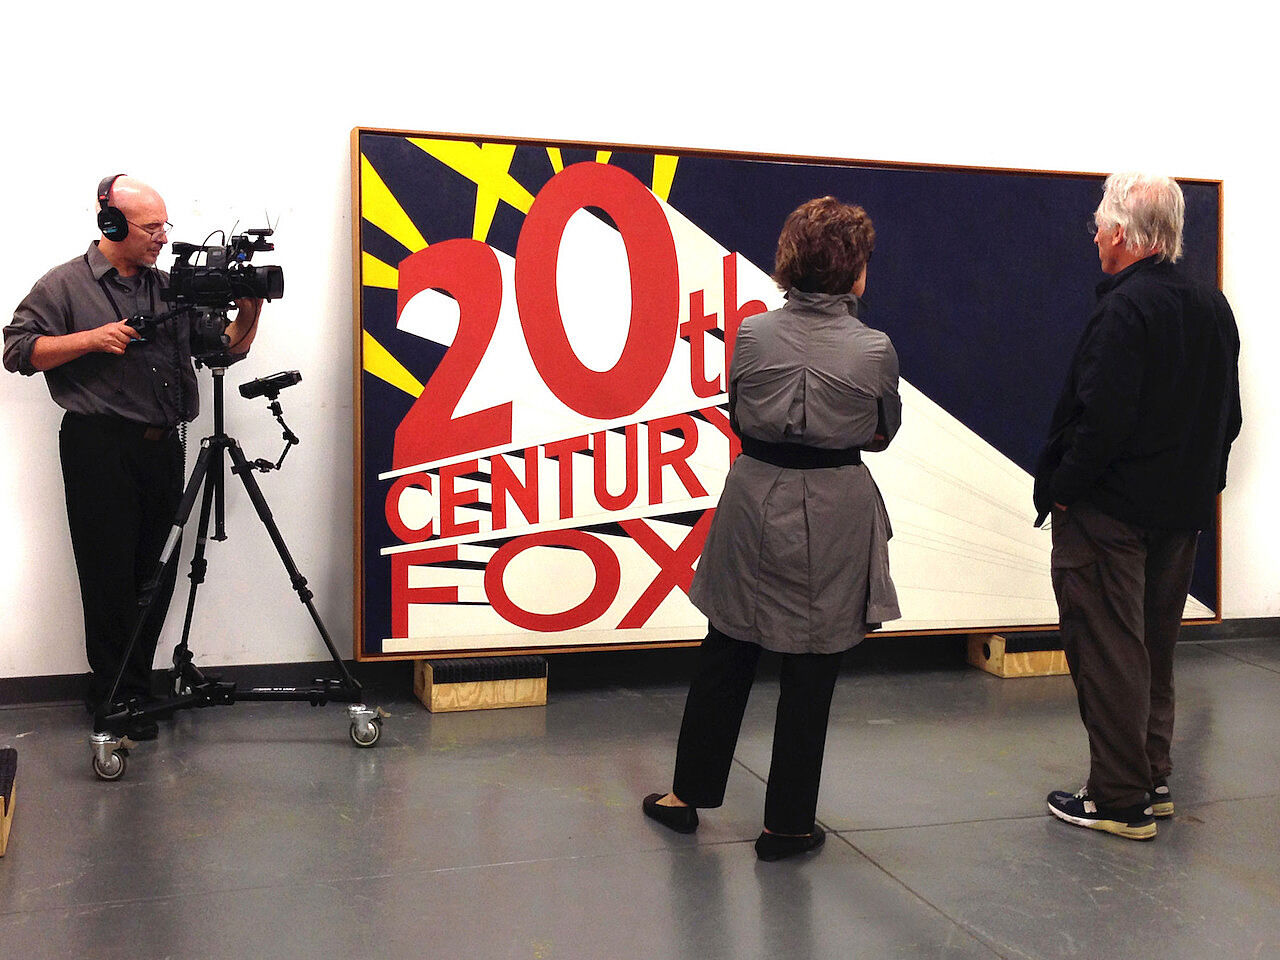 A photograph of people speaking in front of a camera and an artwork.